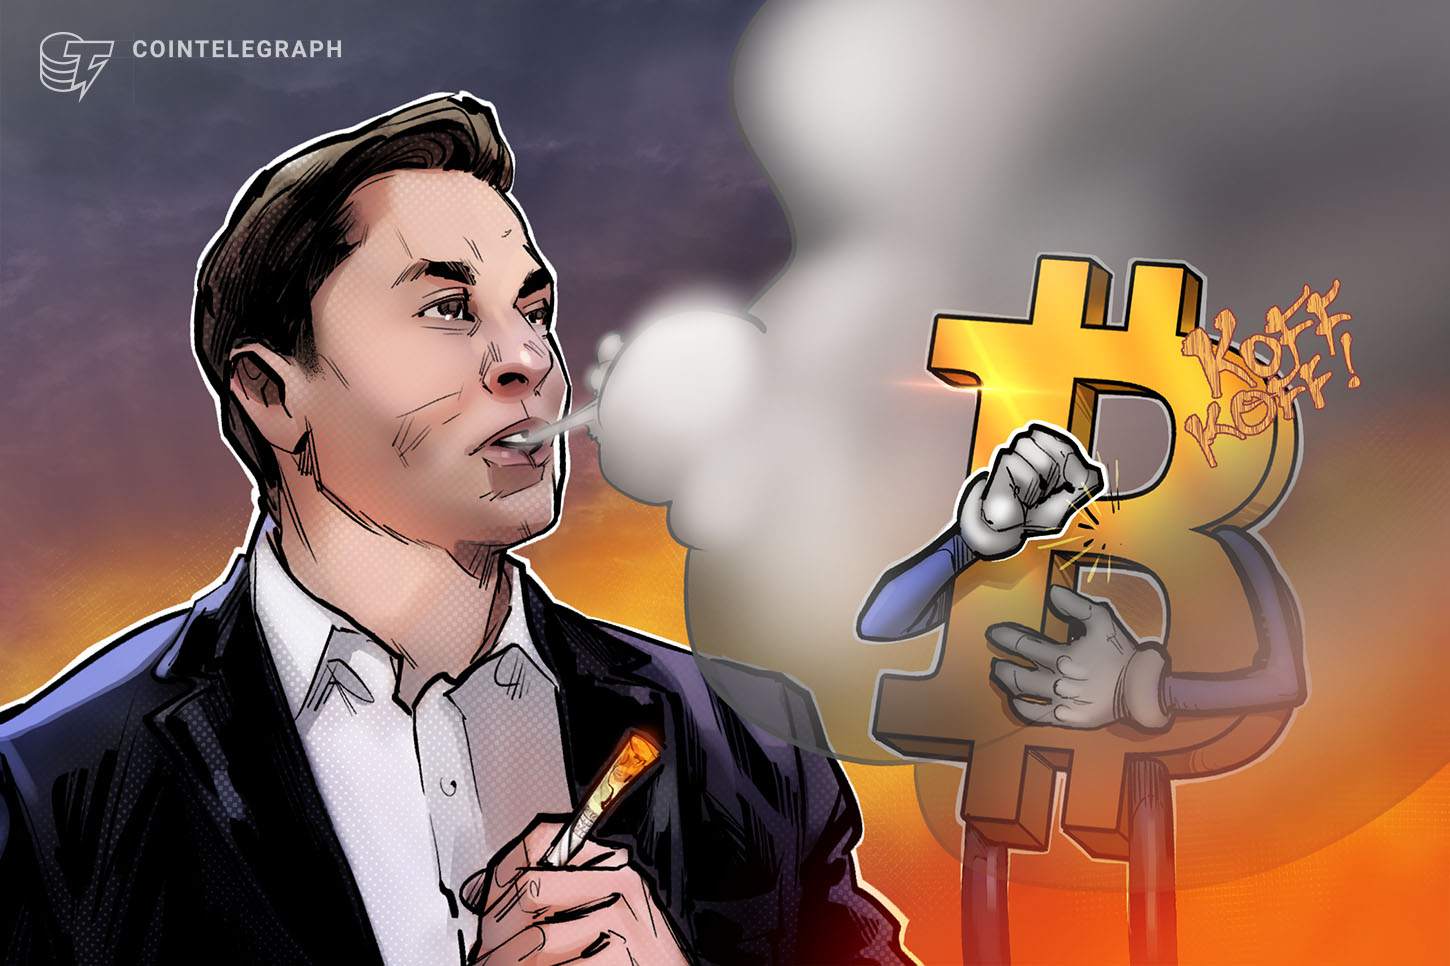 Elon Musk and Bitcoin: A toxic relationship